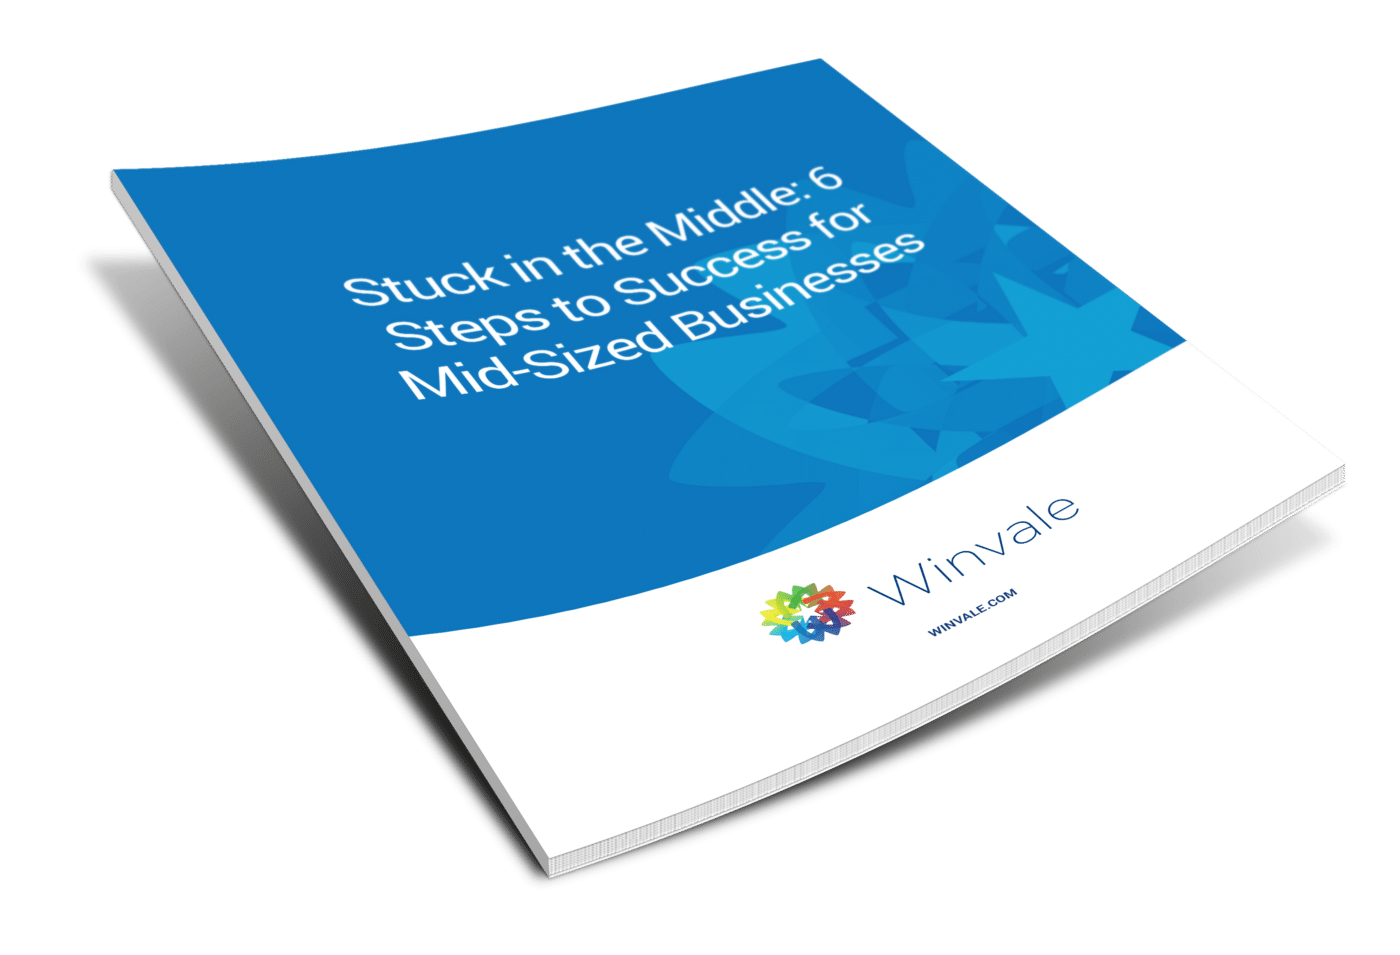 Stuck in the Middle: 6 Steps to Success for Mid-Sized Business